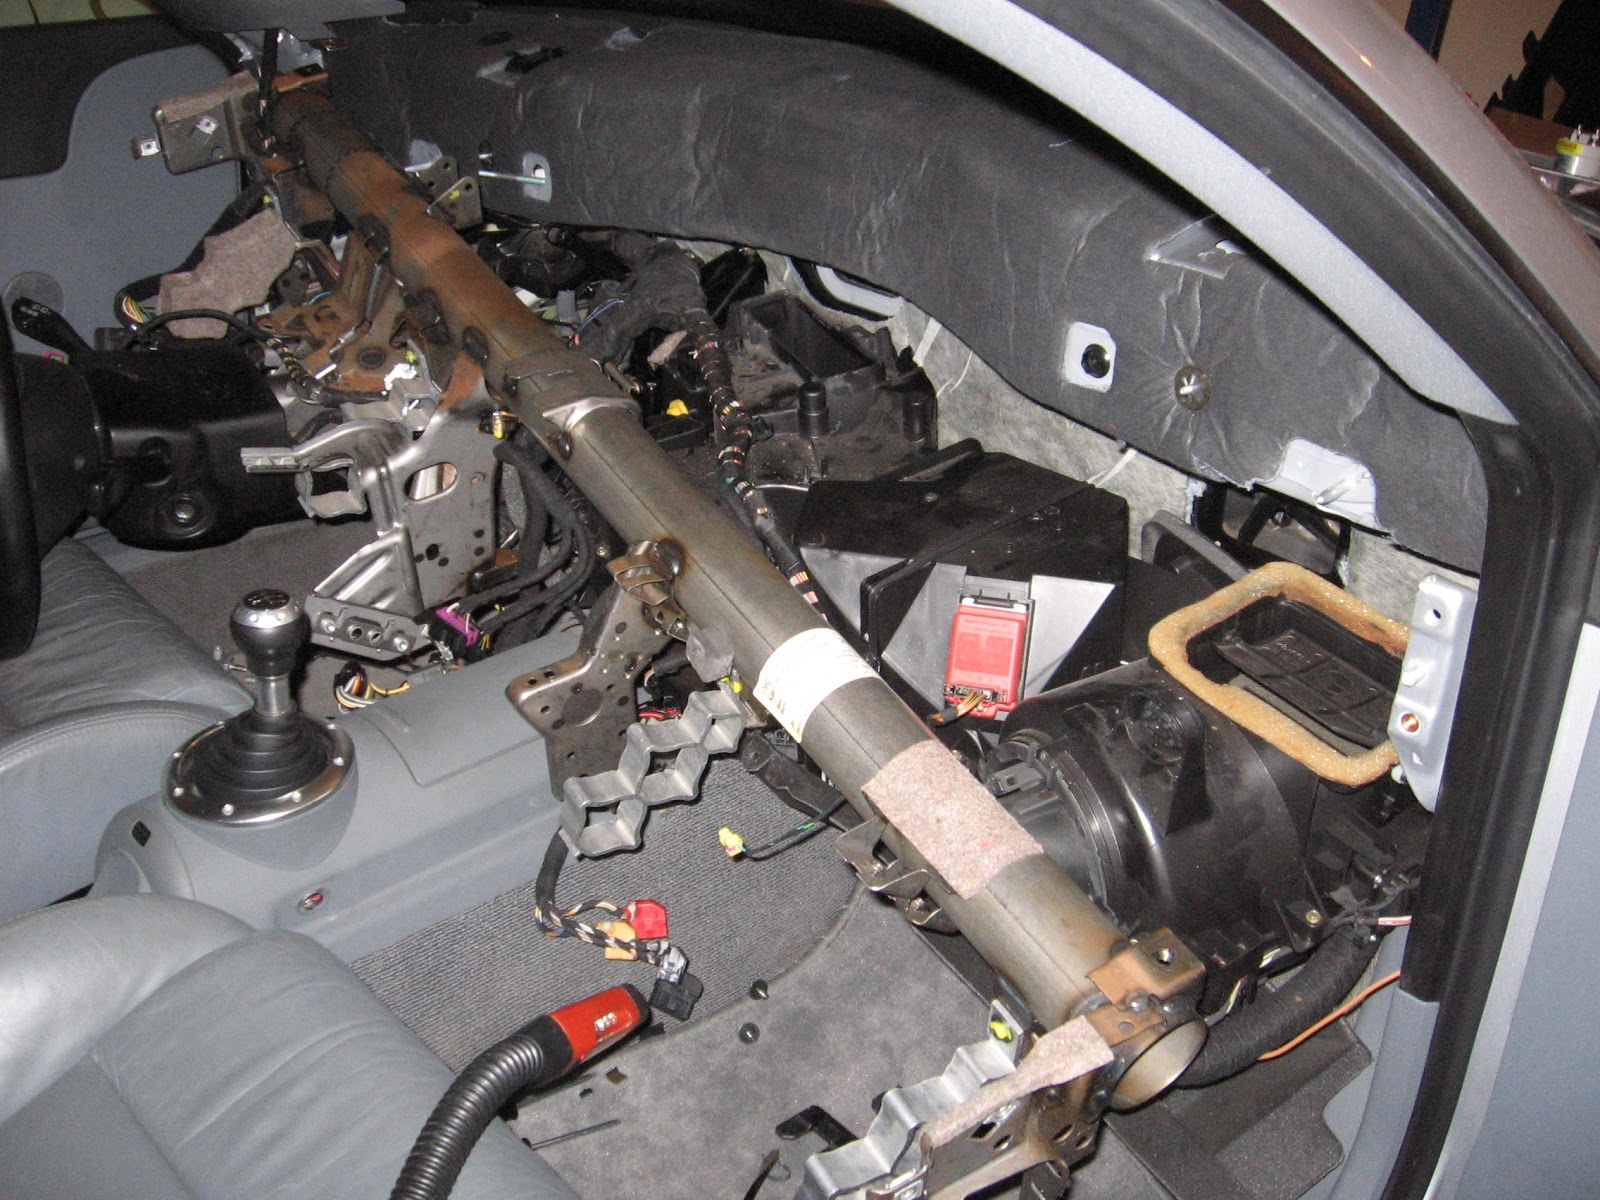 Electric Audi Tt Coupe Under Hood Fuse Box The Heater Core Slides Down Into Black Square In Center Of Photo Below